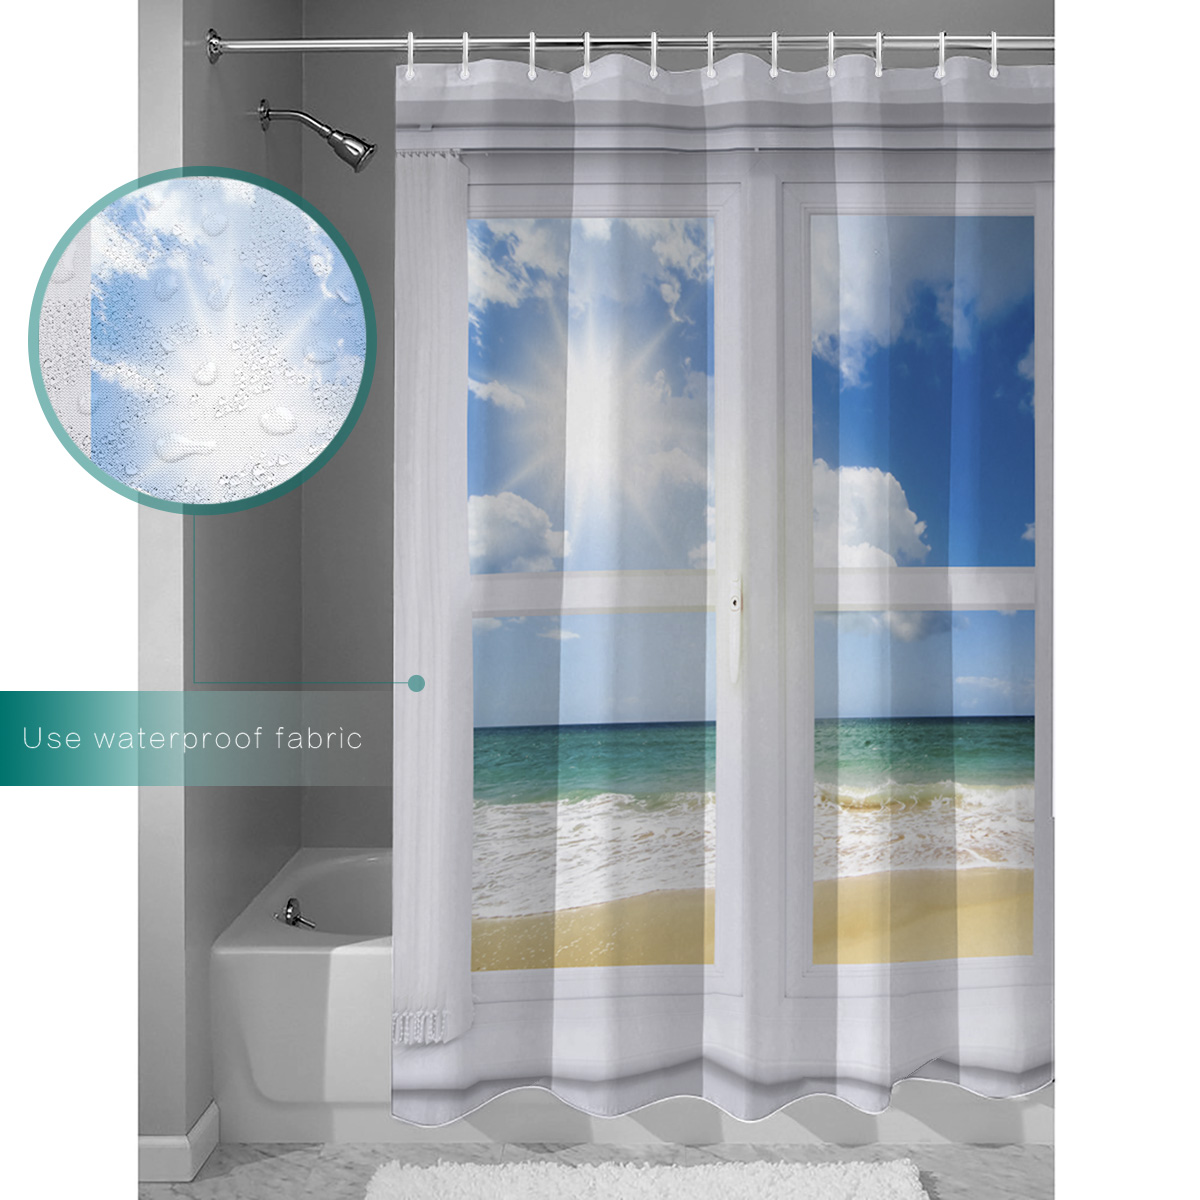 Dearhouse Shower Curtain Beach Window Summer Design Fabric